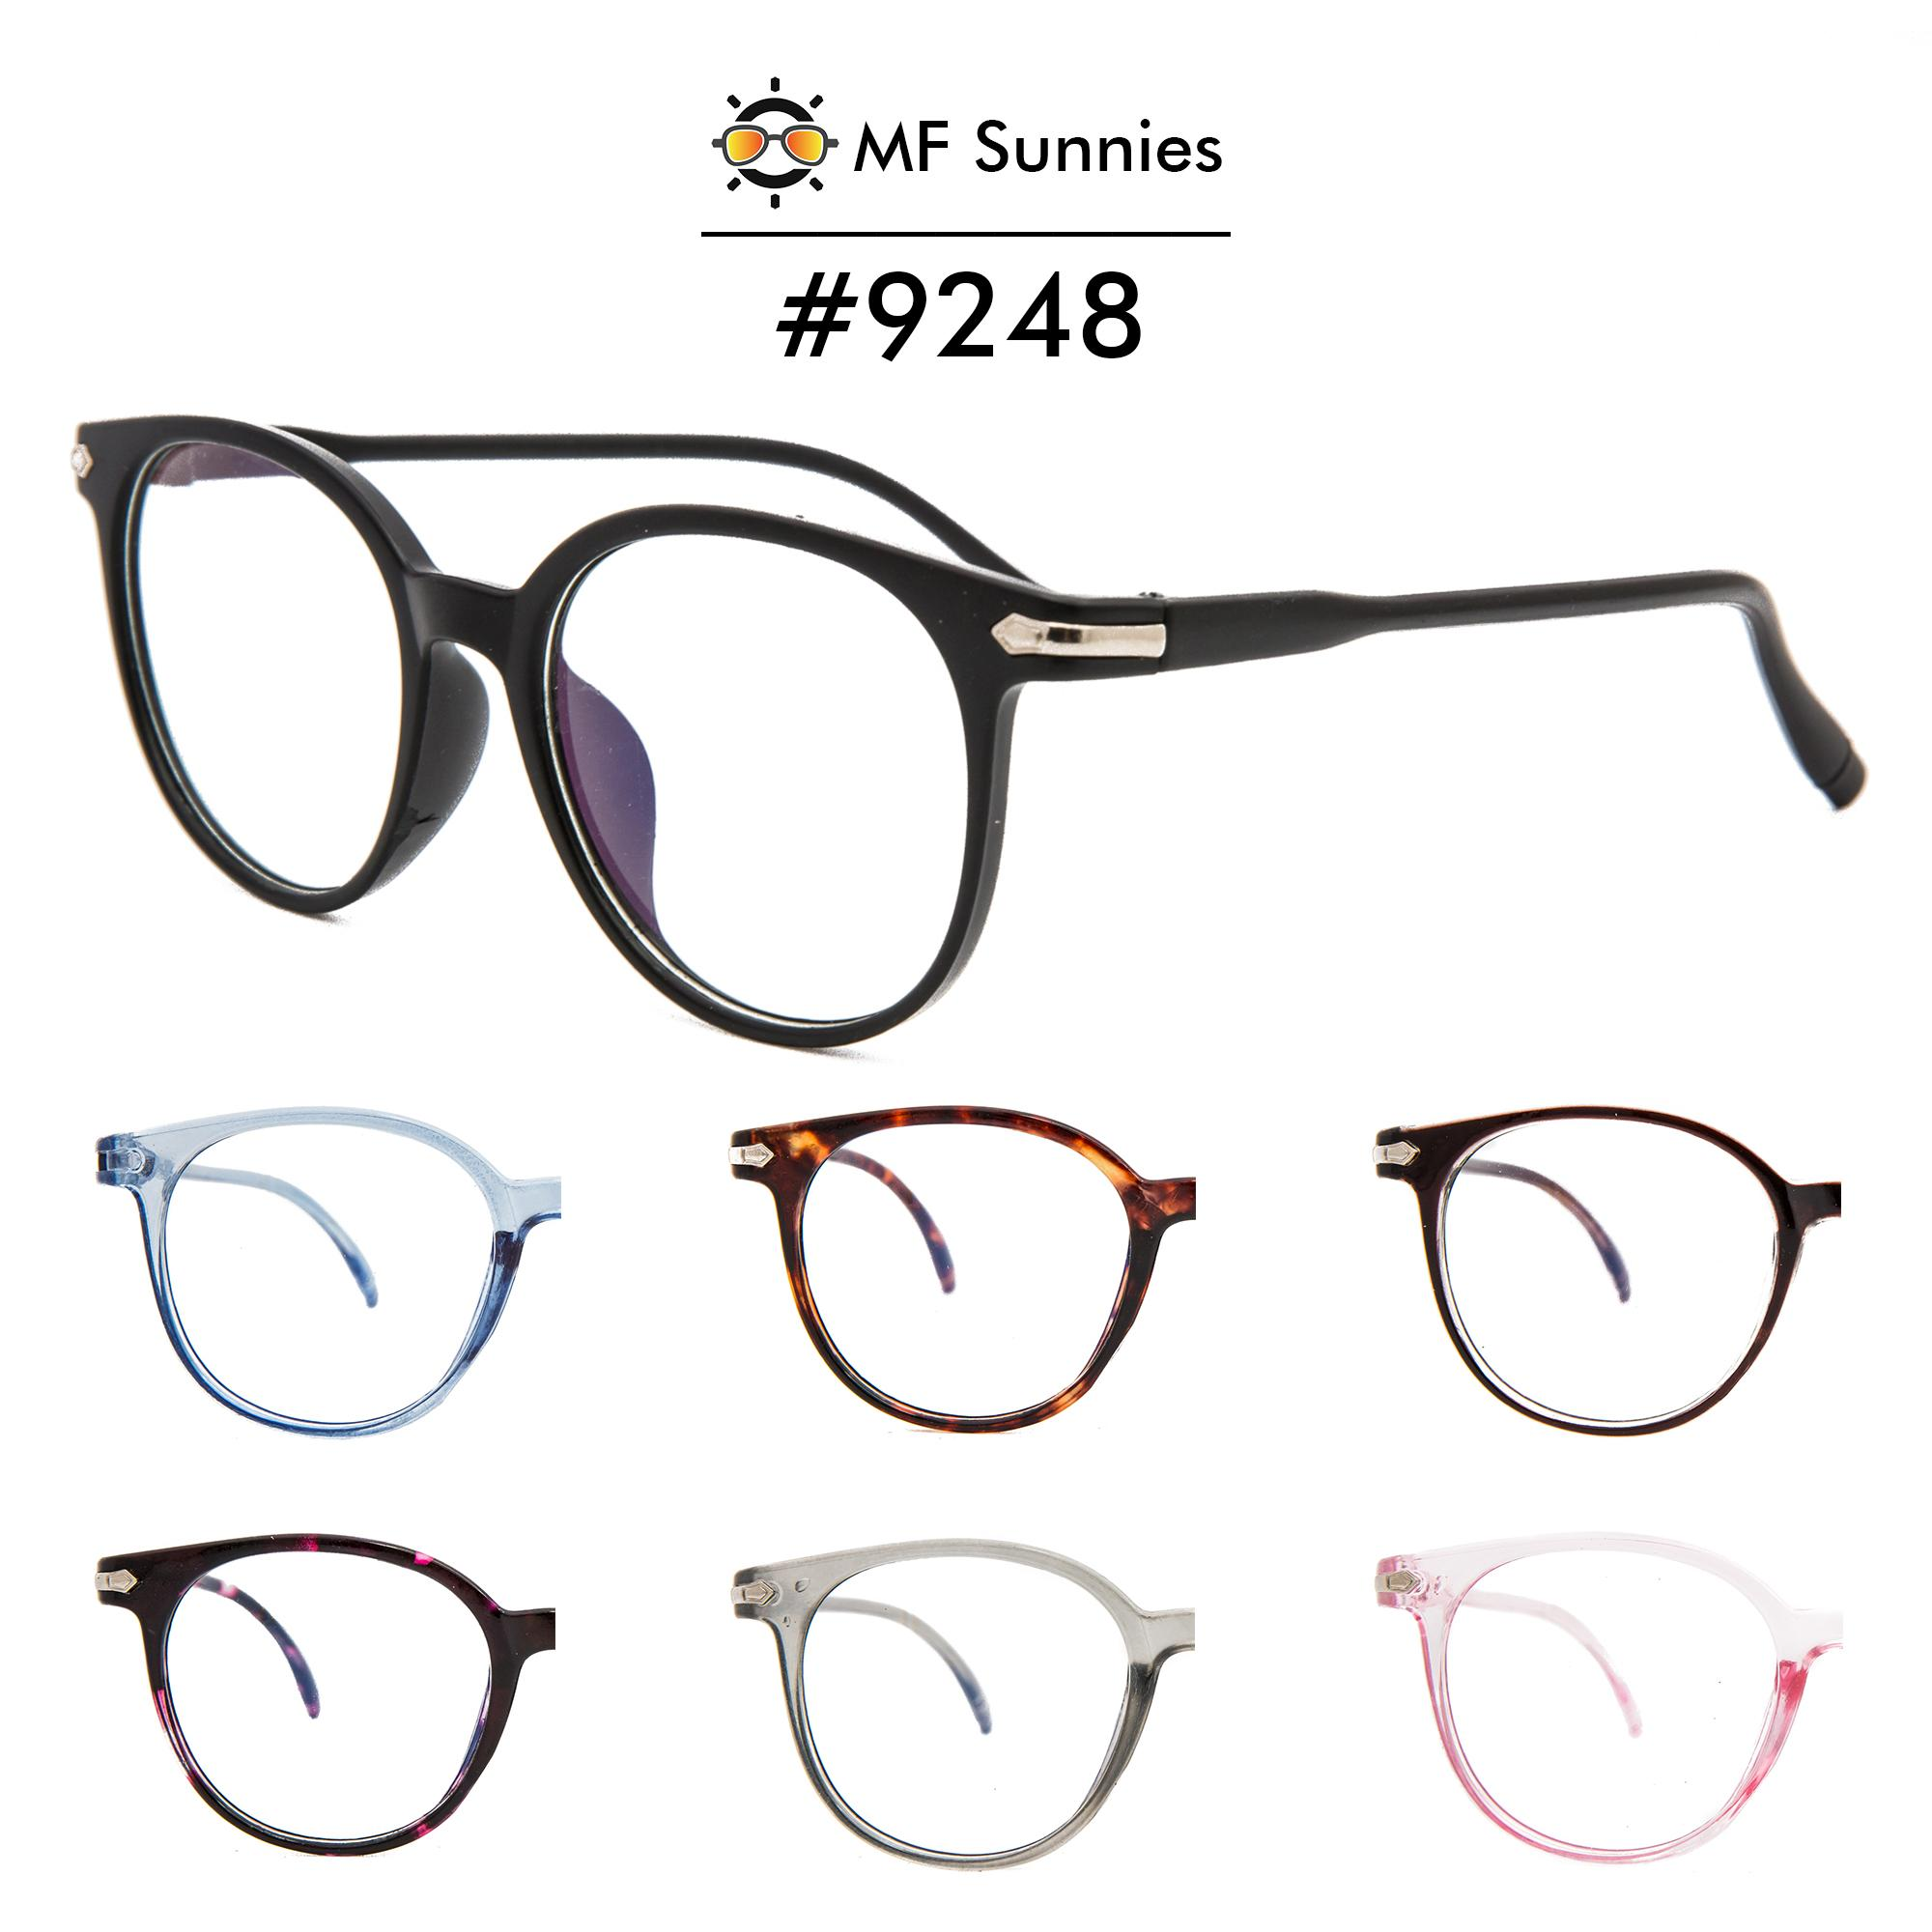 ddbcce27cf61 MFSunnies Computer Anti-Radiation   Anti-Blue Light Flexible Frame Fashion  Eyewear  9248